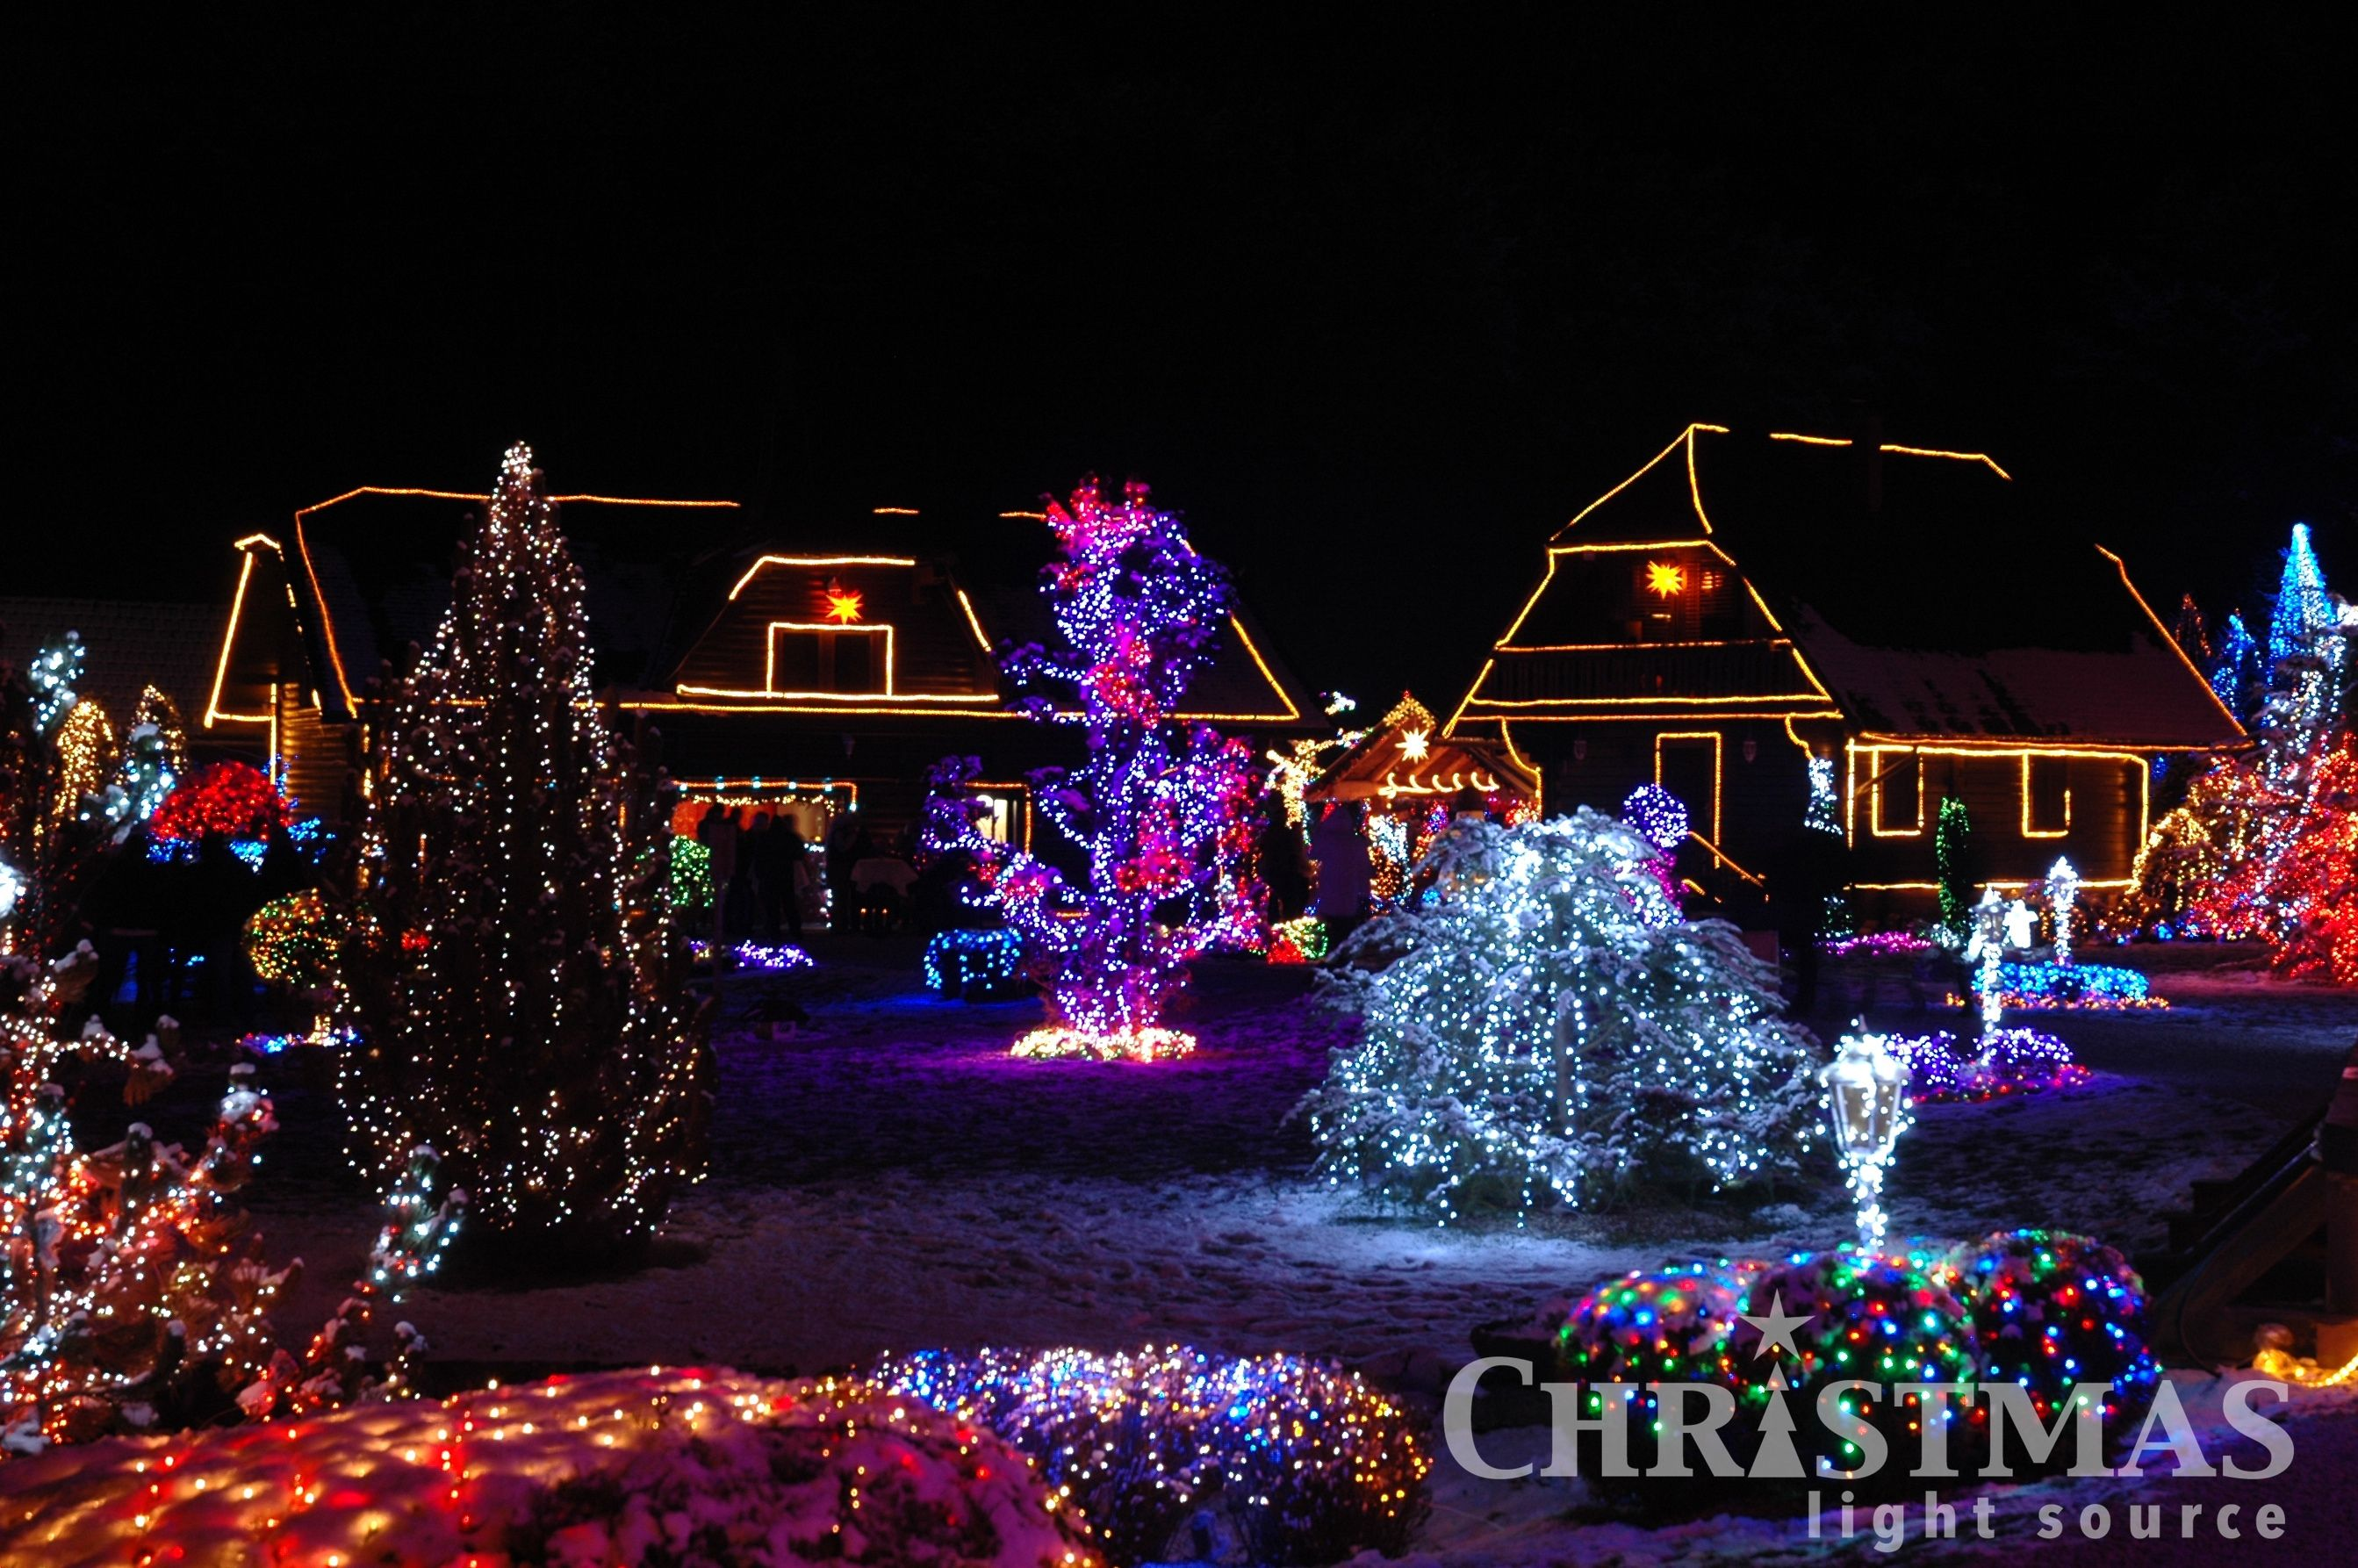 We love displays that use an over-the-top amount of #ledchristmaslights Running 100's of strings in the front yard no longer has to blow all the breakers!  #griswoldchistmas #christmaslights